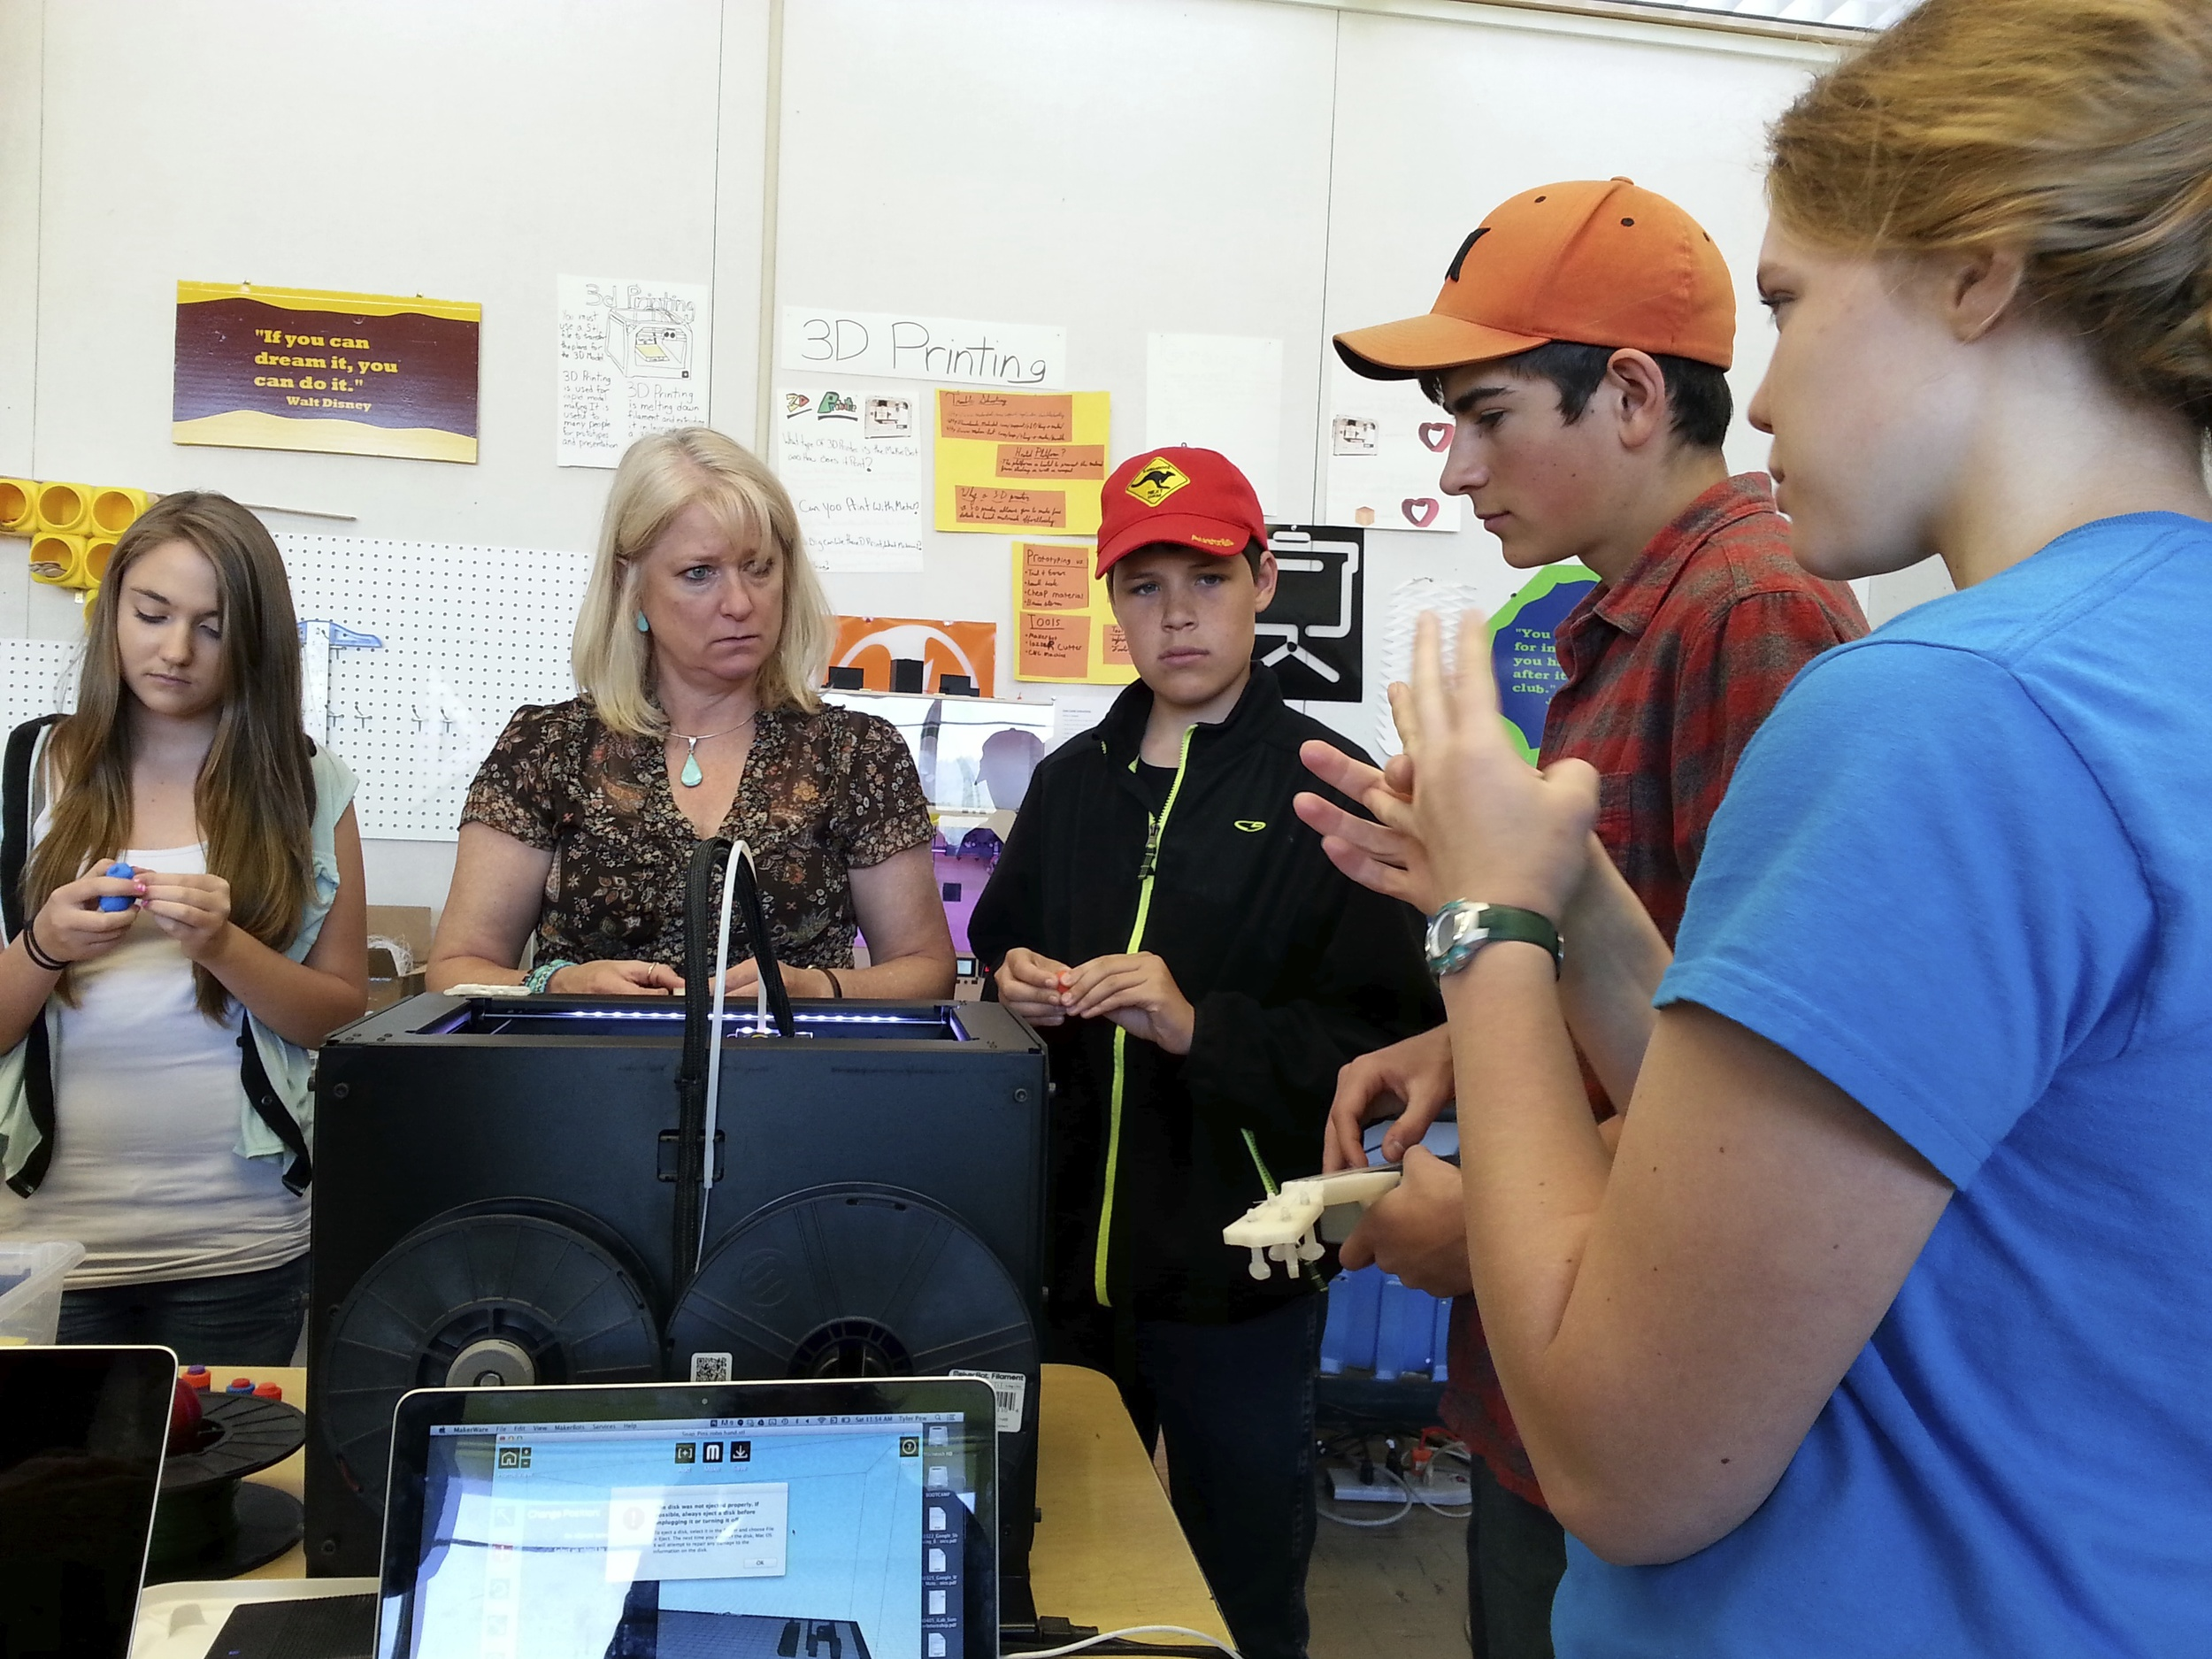 Teachers and students learn, side-by-side, about 3D printing